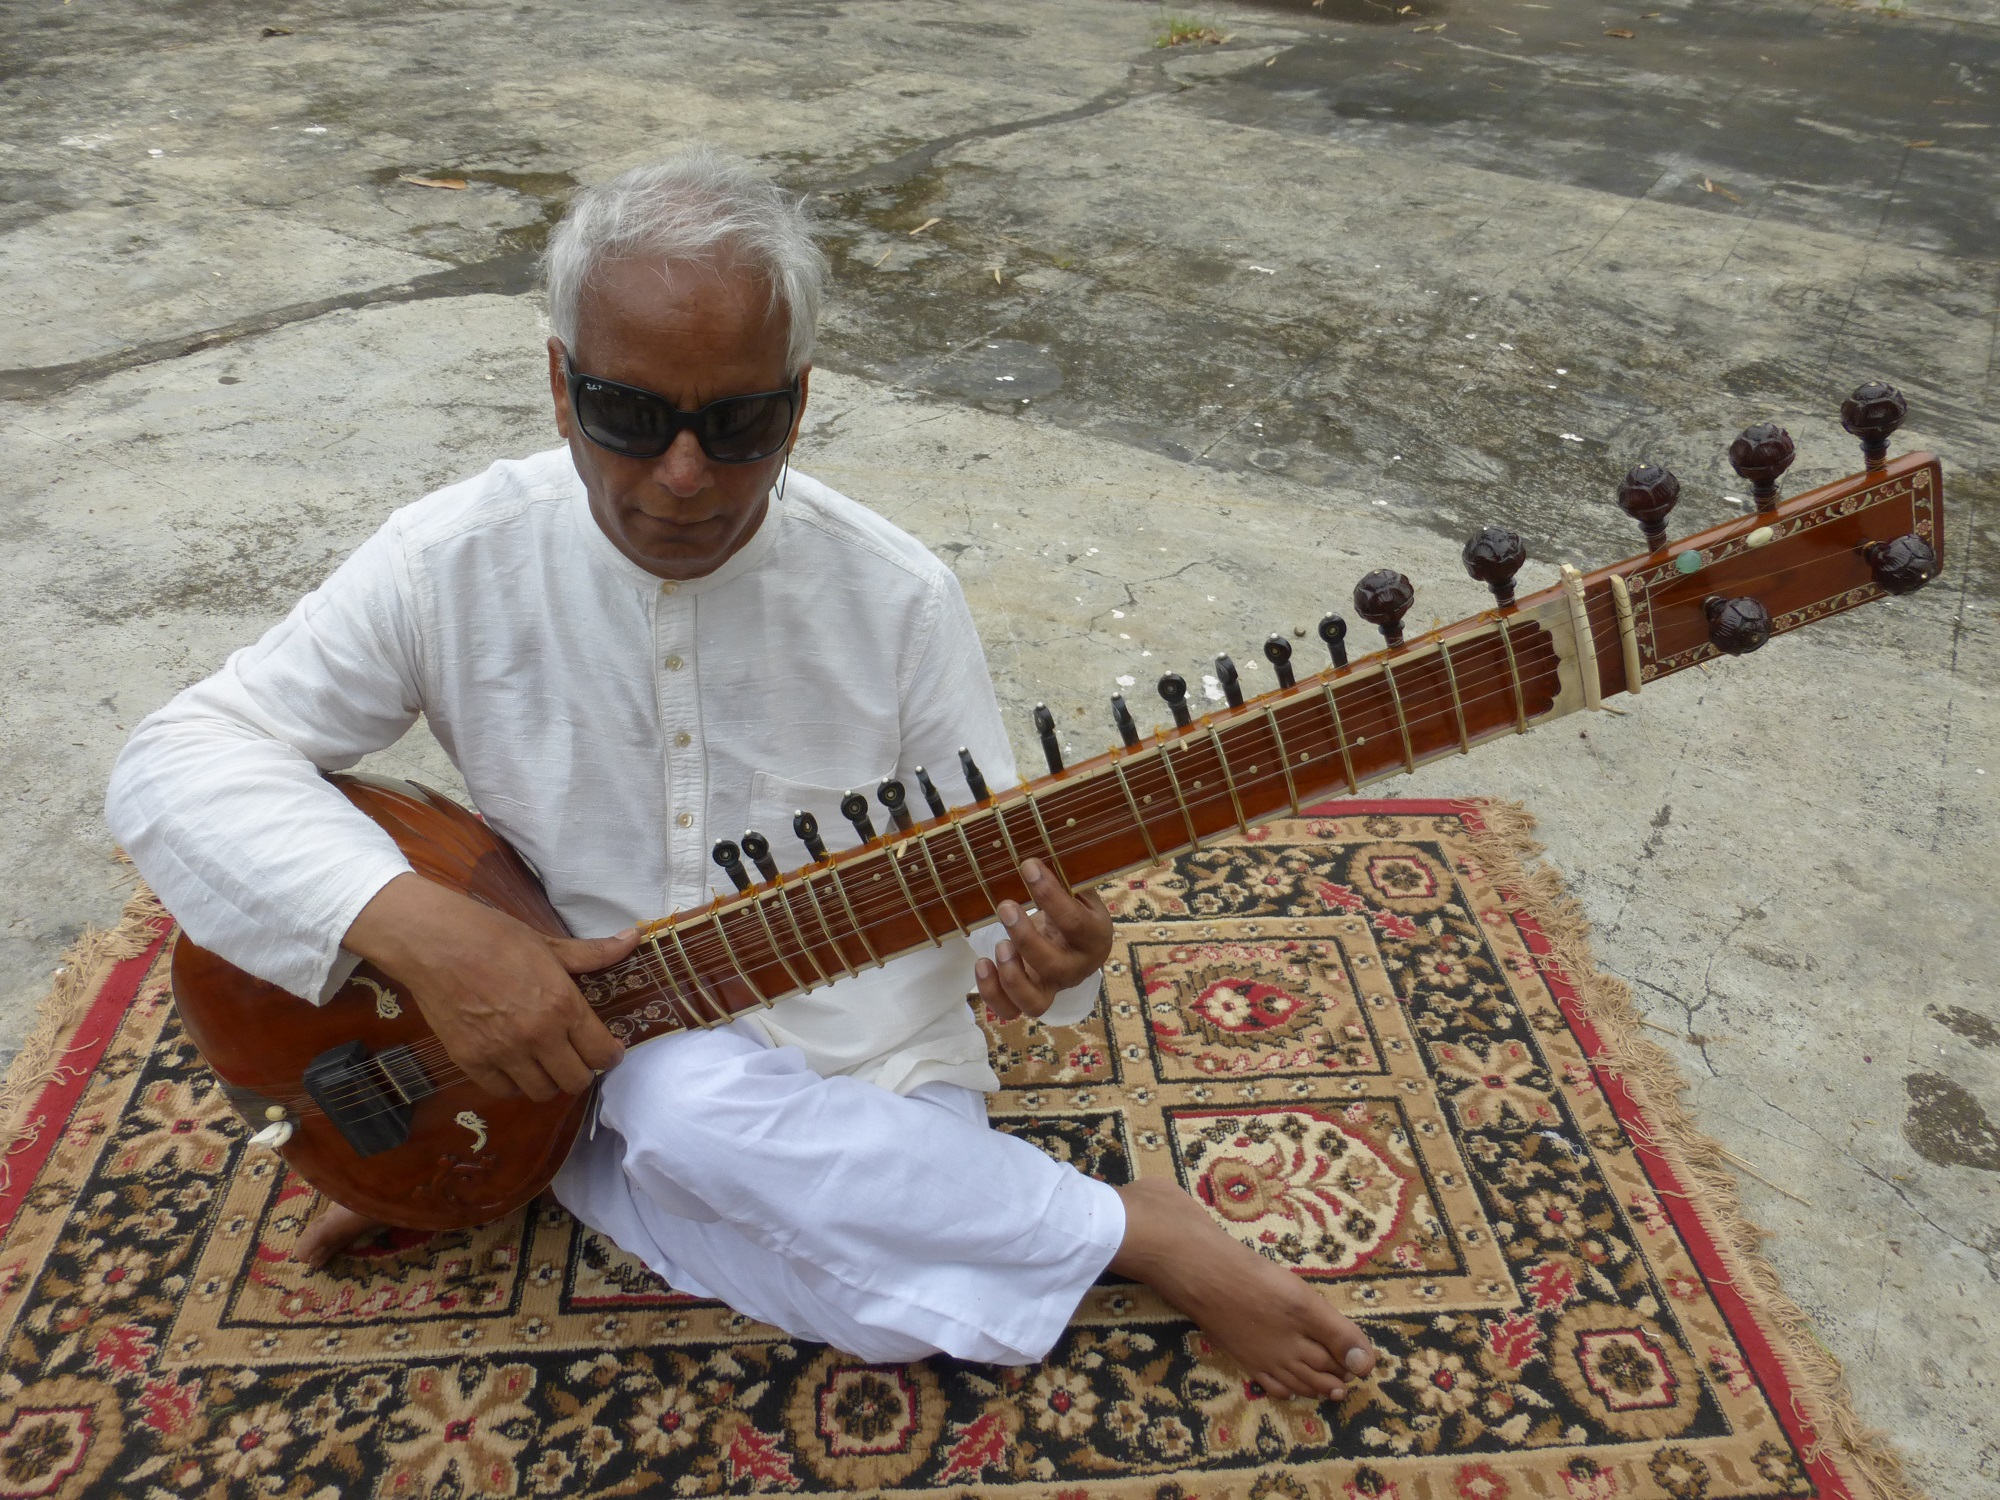 Baluji is sat on a mat holding a sitar.